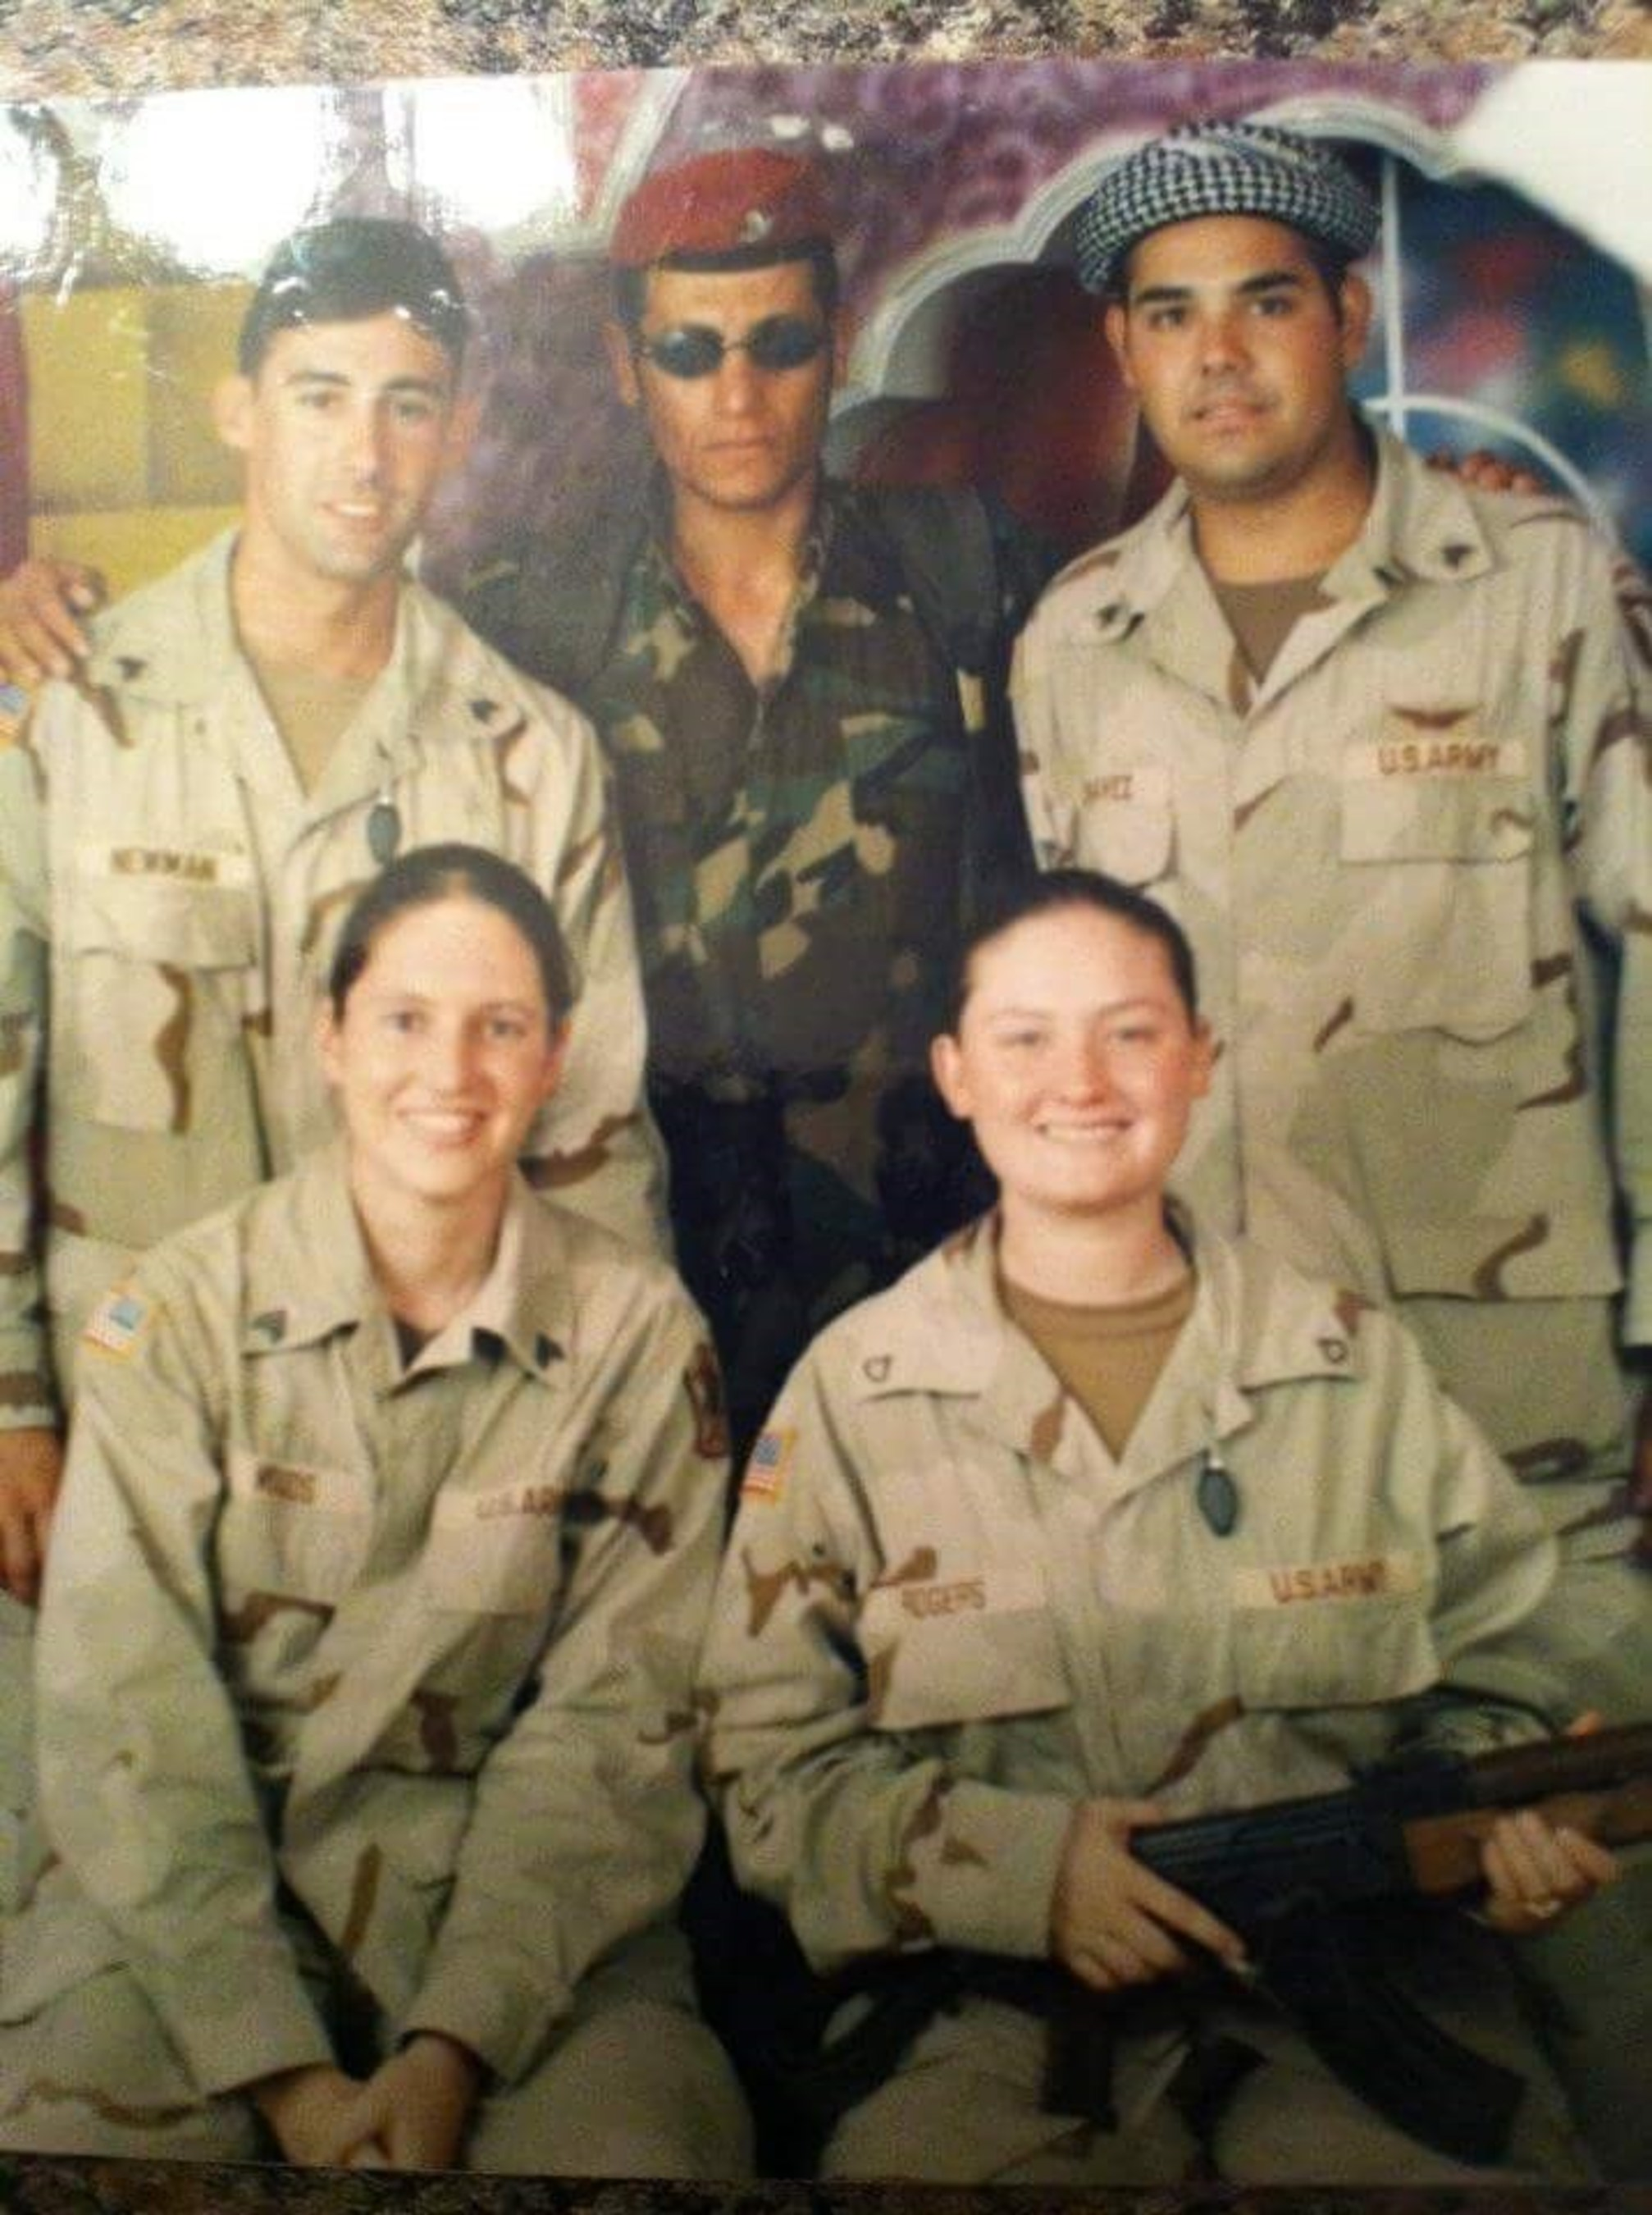 Army veteran Demecia Rogers, bottom right, reached out to Wounded Warrior Project for help with isolation and mental health issues following her medical discharge from military service in 2005.